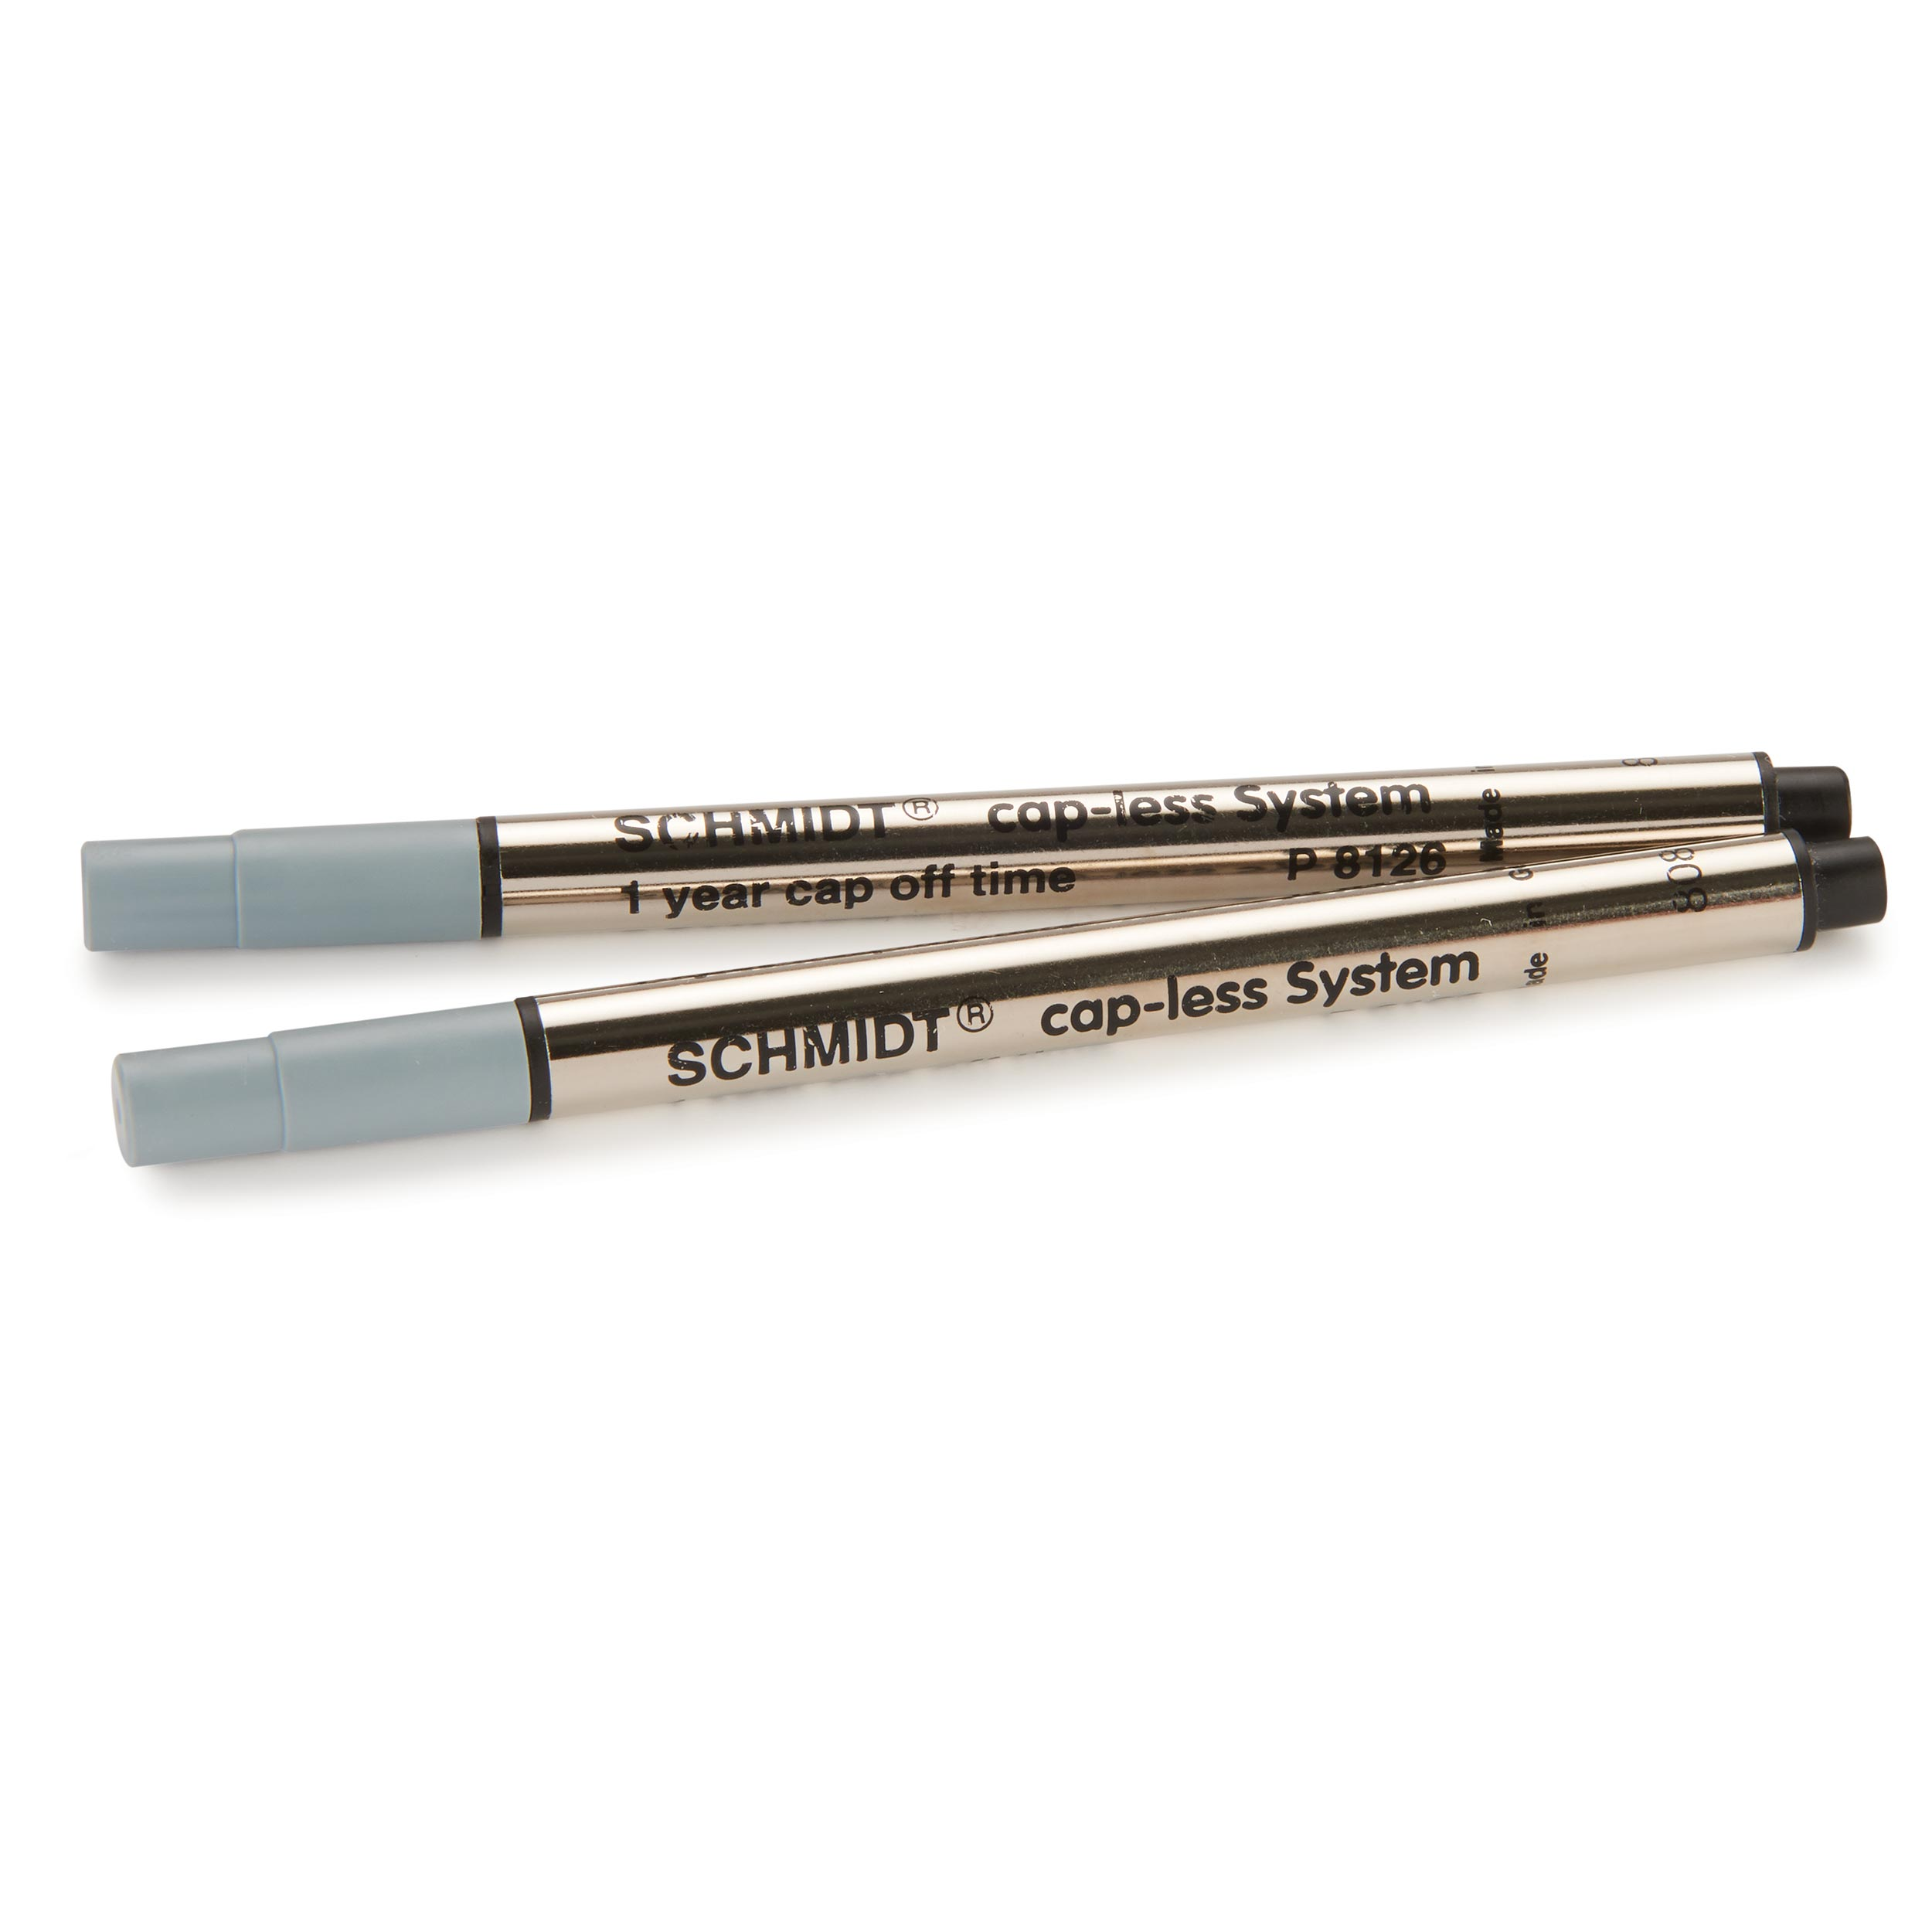 Mini Schmidt? Rollerball Refill for Attraction Magnetic Rollerball Pen Kit - Black 2-Piece